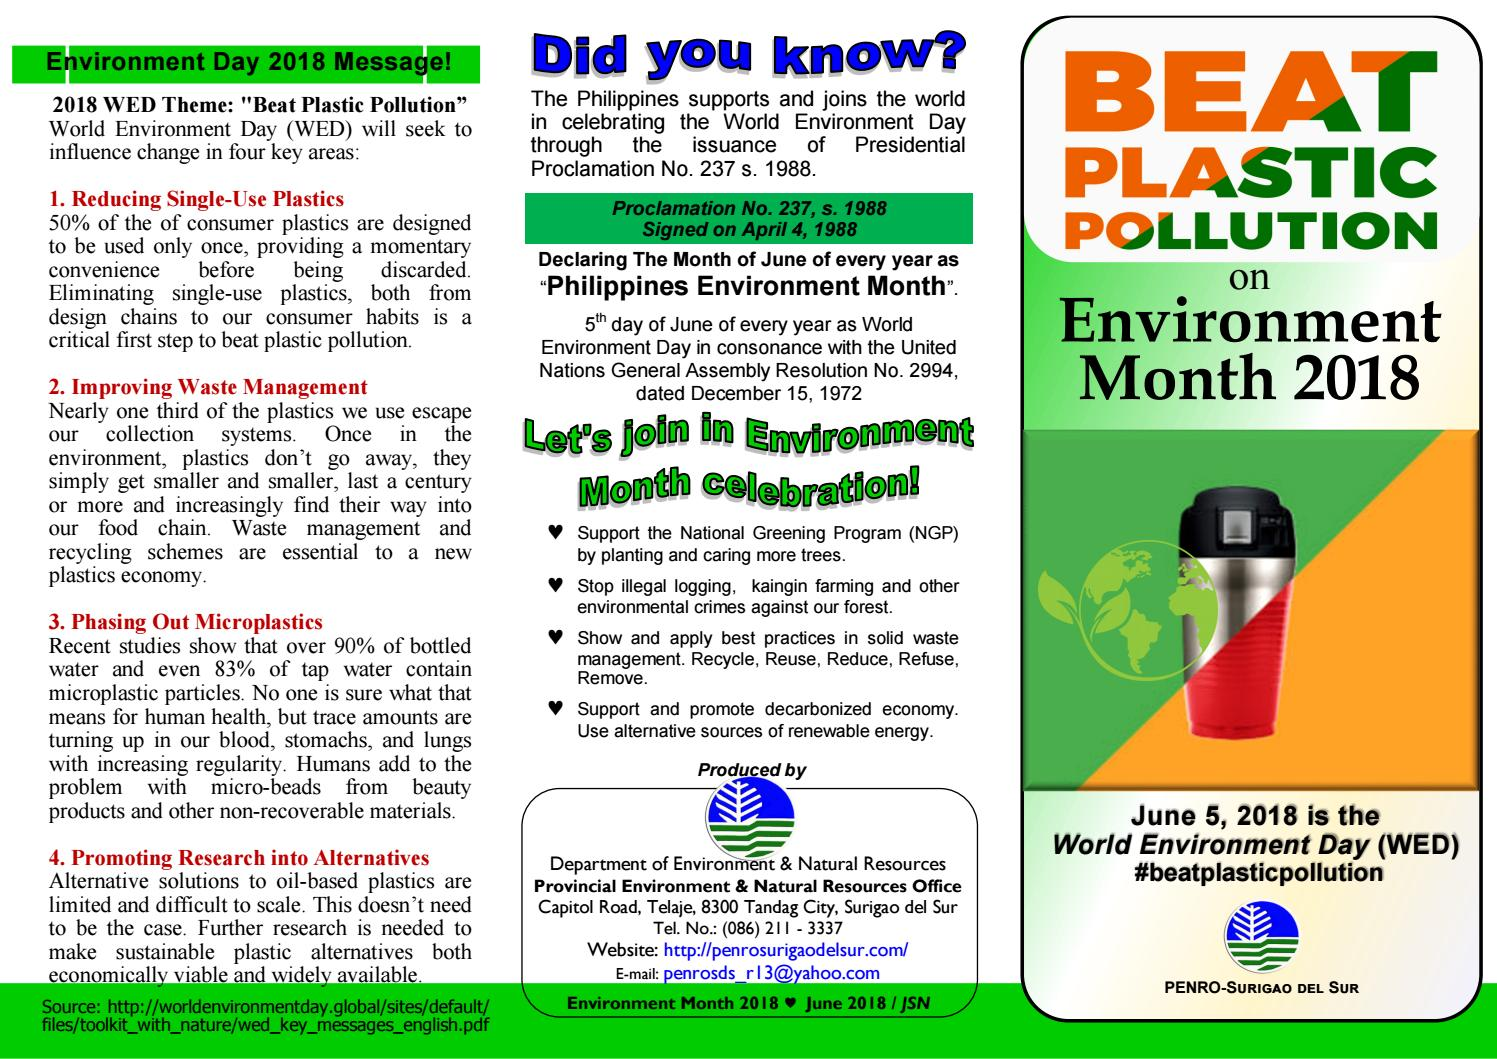 Environment Month 2018 by PENRO Surigao Sur IEC Materials - issuu